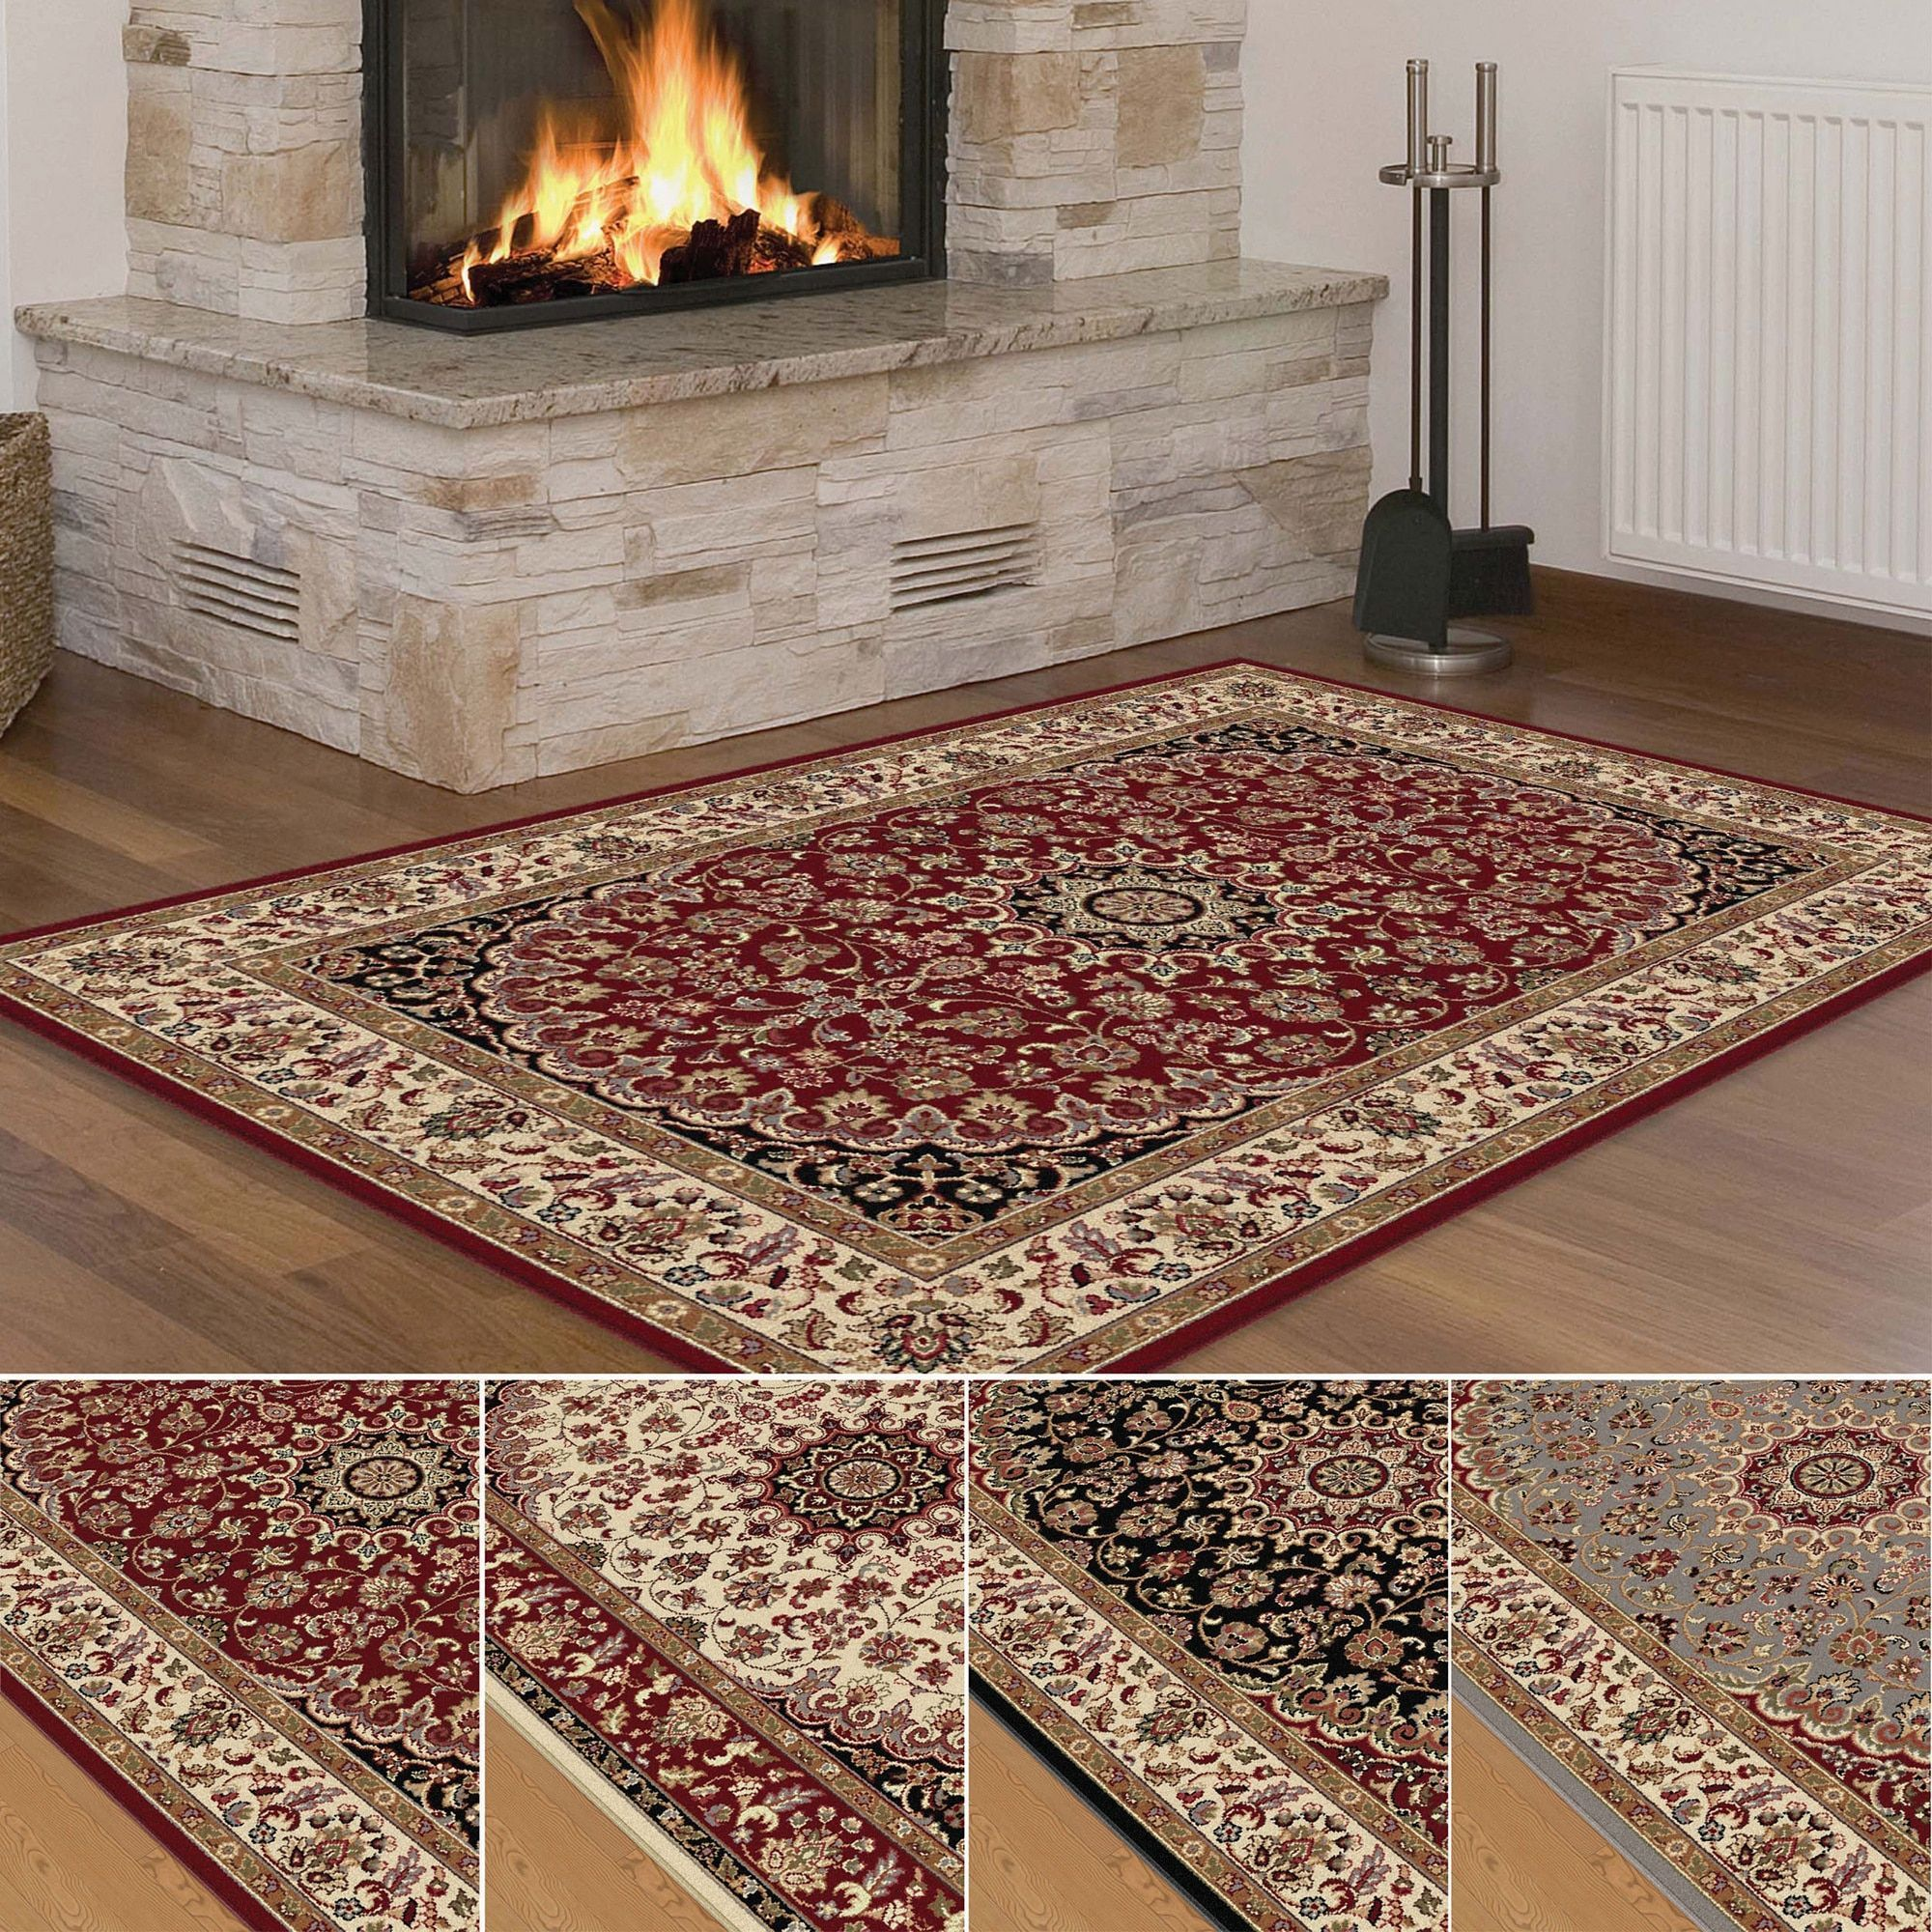 Alise rhythm transitional area rug u x u red size u x